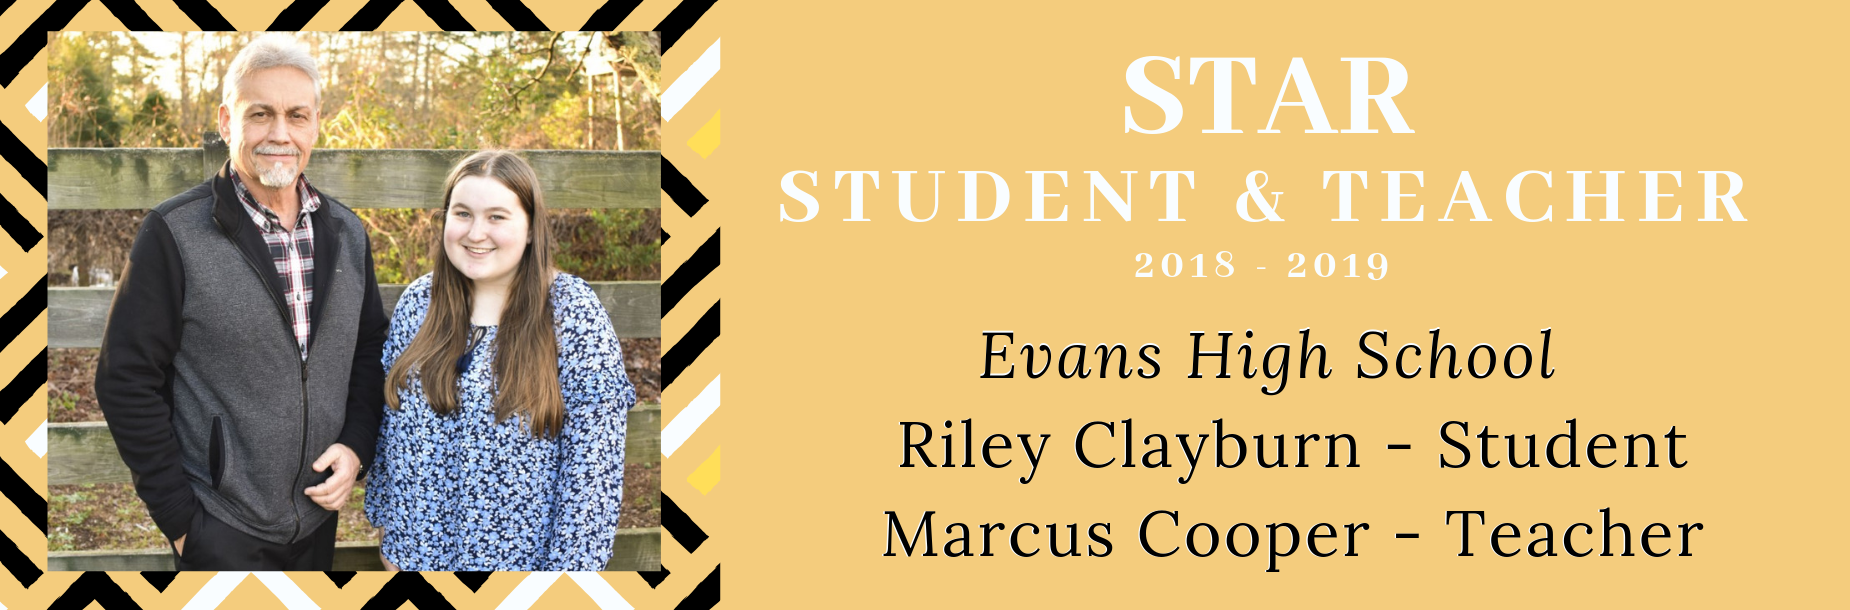 Evans High School STAR student Riley Clayburn with STAR teacher Marcus Cooper